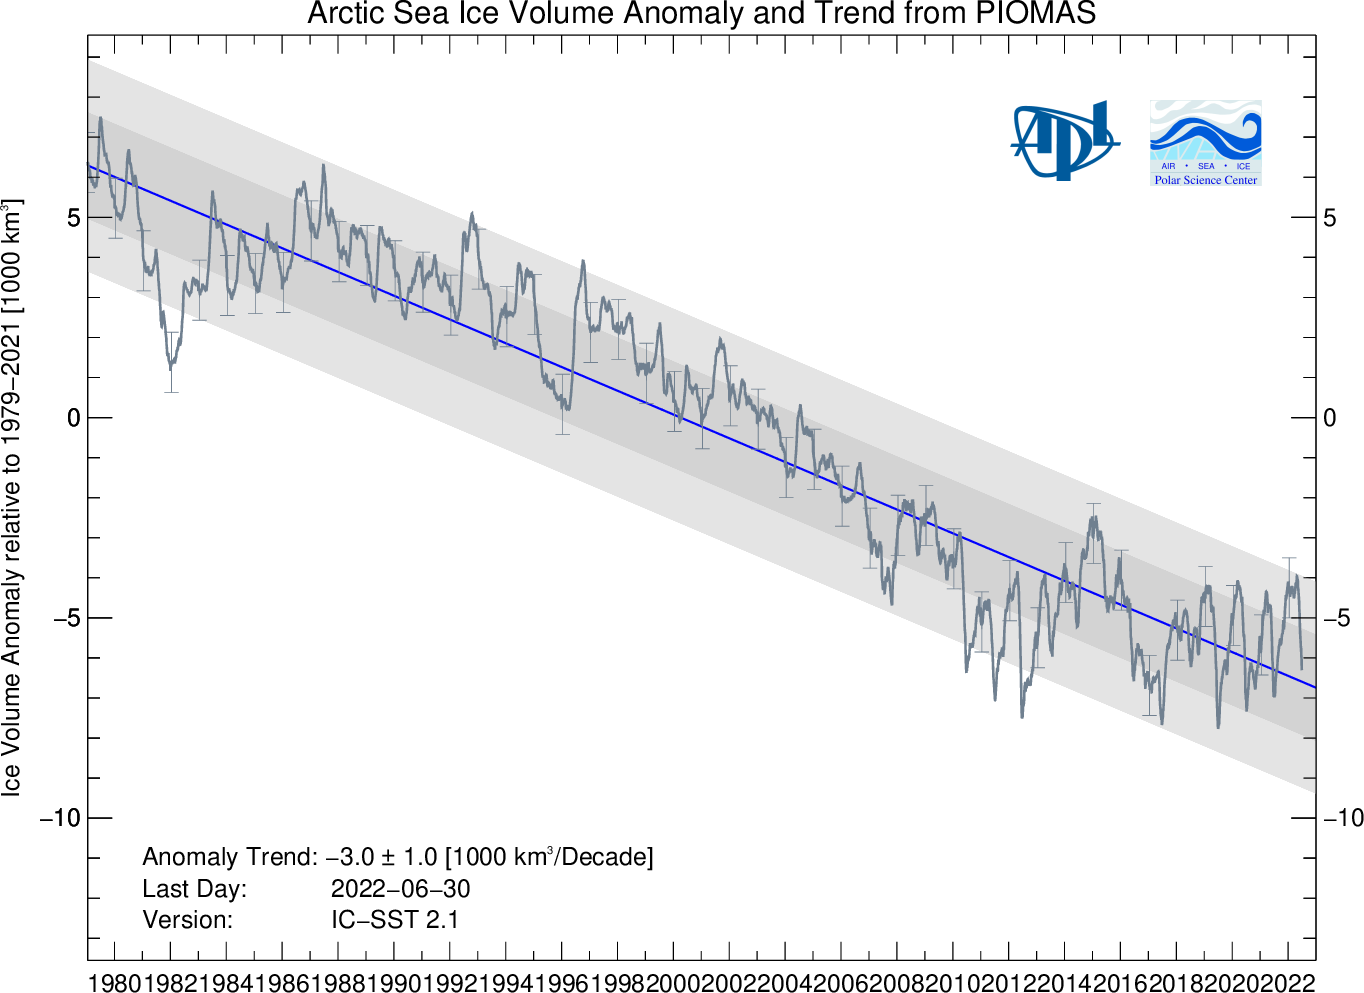 Fig1 Arctic Sea Ice Volume Anomaly From Piomas Updated Once A Month Daily  Sea Ice Volume Anomalies For Each Day Areputed Relative To The 1979 To  2016